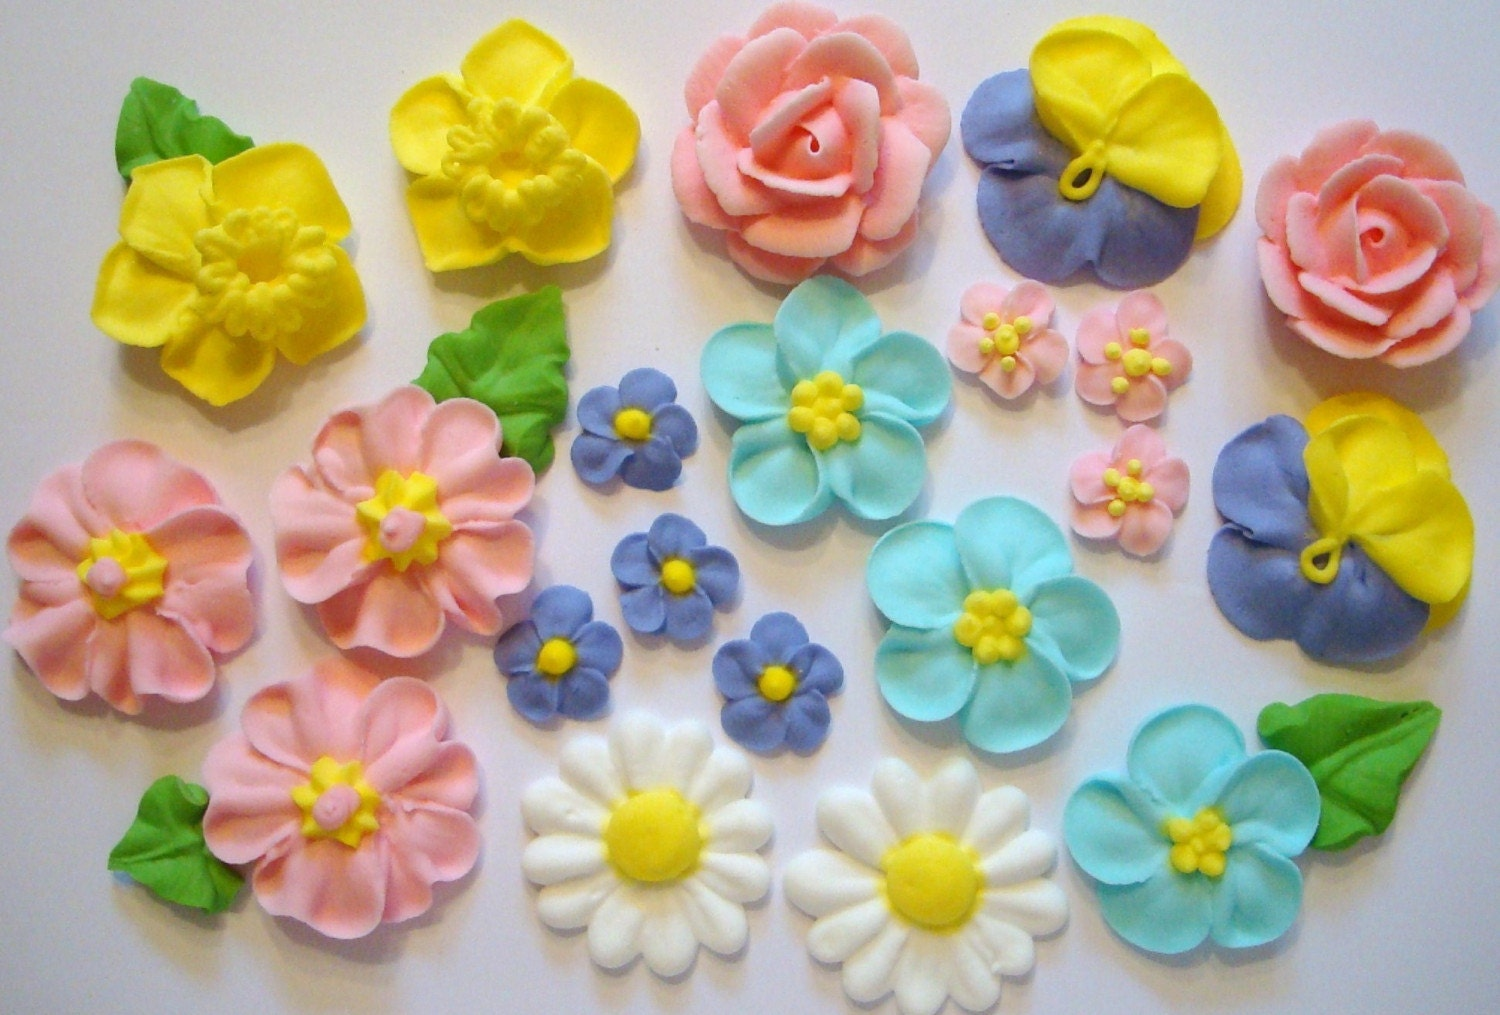 Cake Decorating Icing For Flowers : LOT of 100 Royal Icing Flowers for Cake Decorating